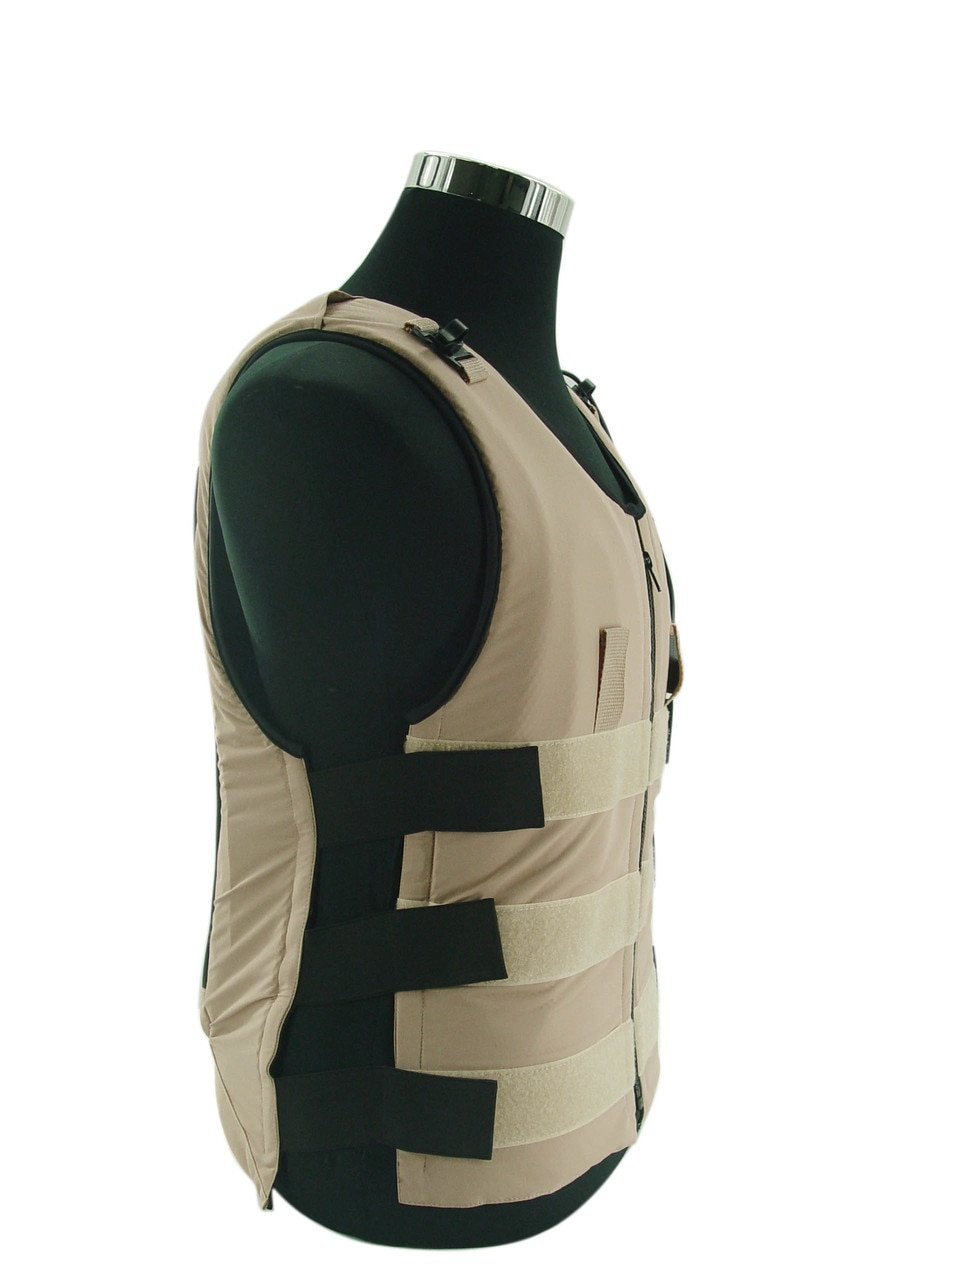 Ice Water Circulating Cooling Vest Tan Detachable Bladder M-L by Compcooler (Image #8)